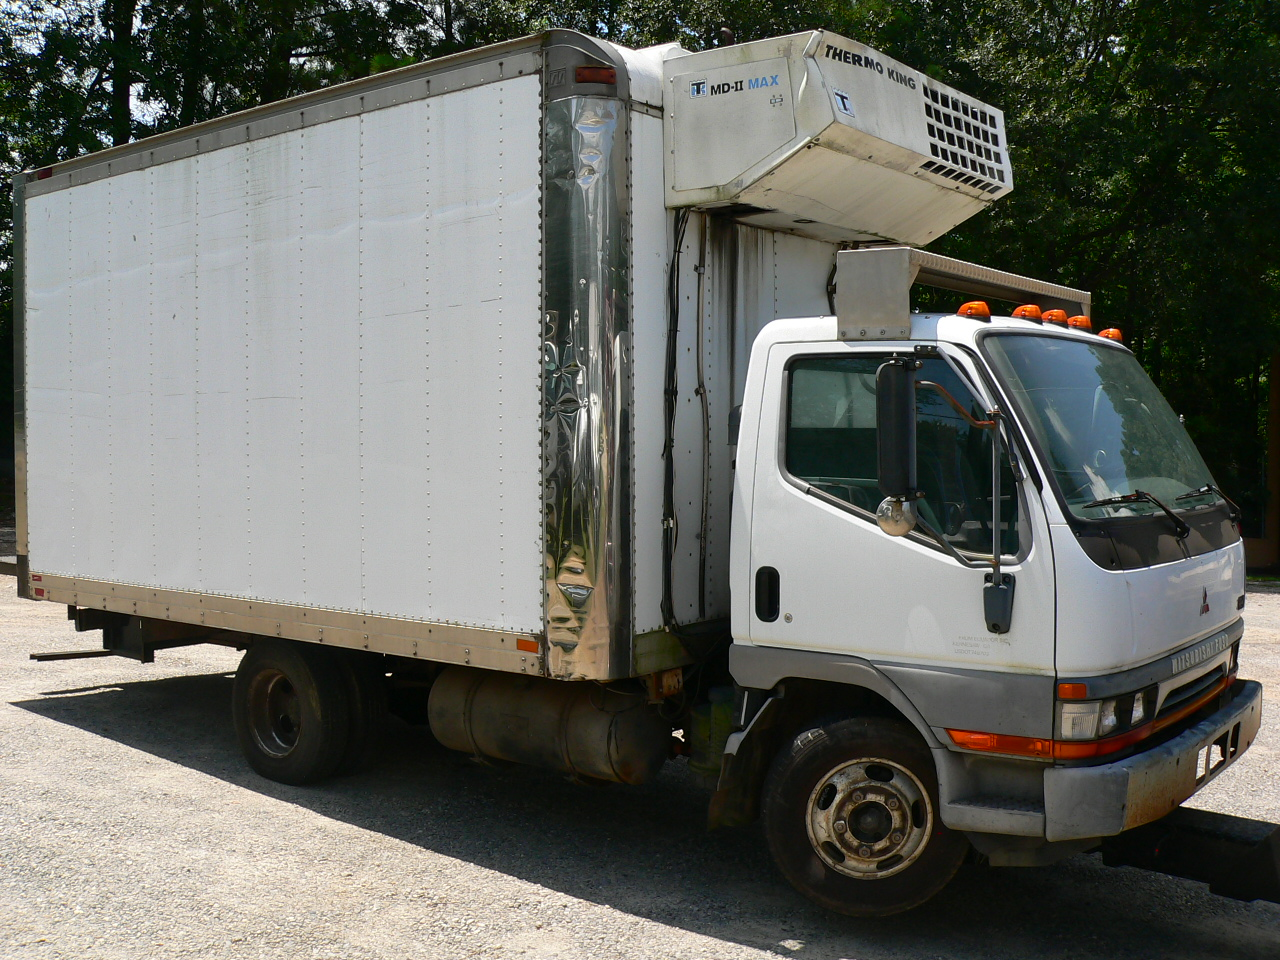 used refrigerated trucks for sale in georgia cdl and non cdl reefer trucks. Black Bedroom Furniture Sets. Home Design Ideas